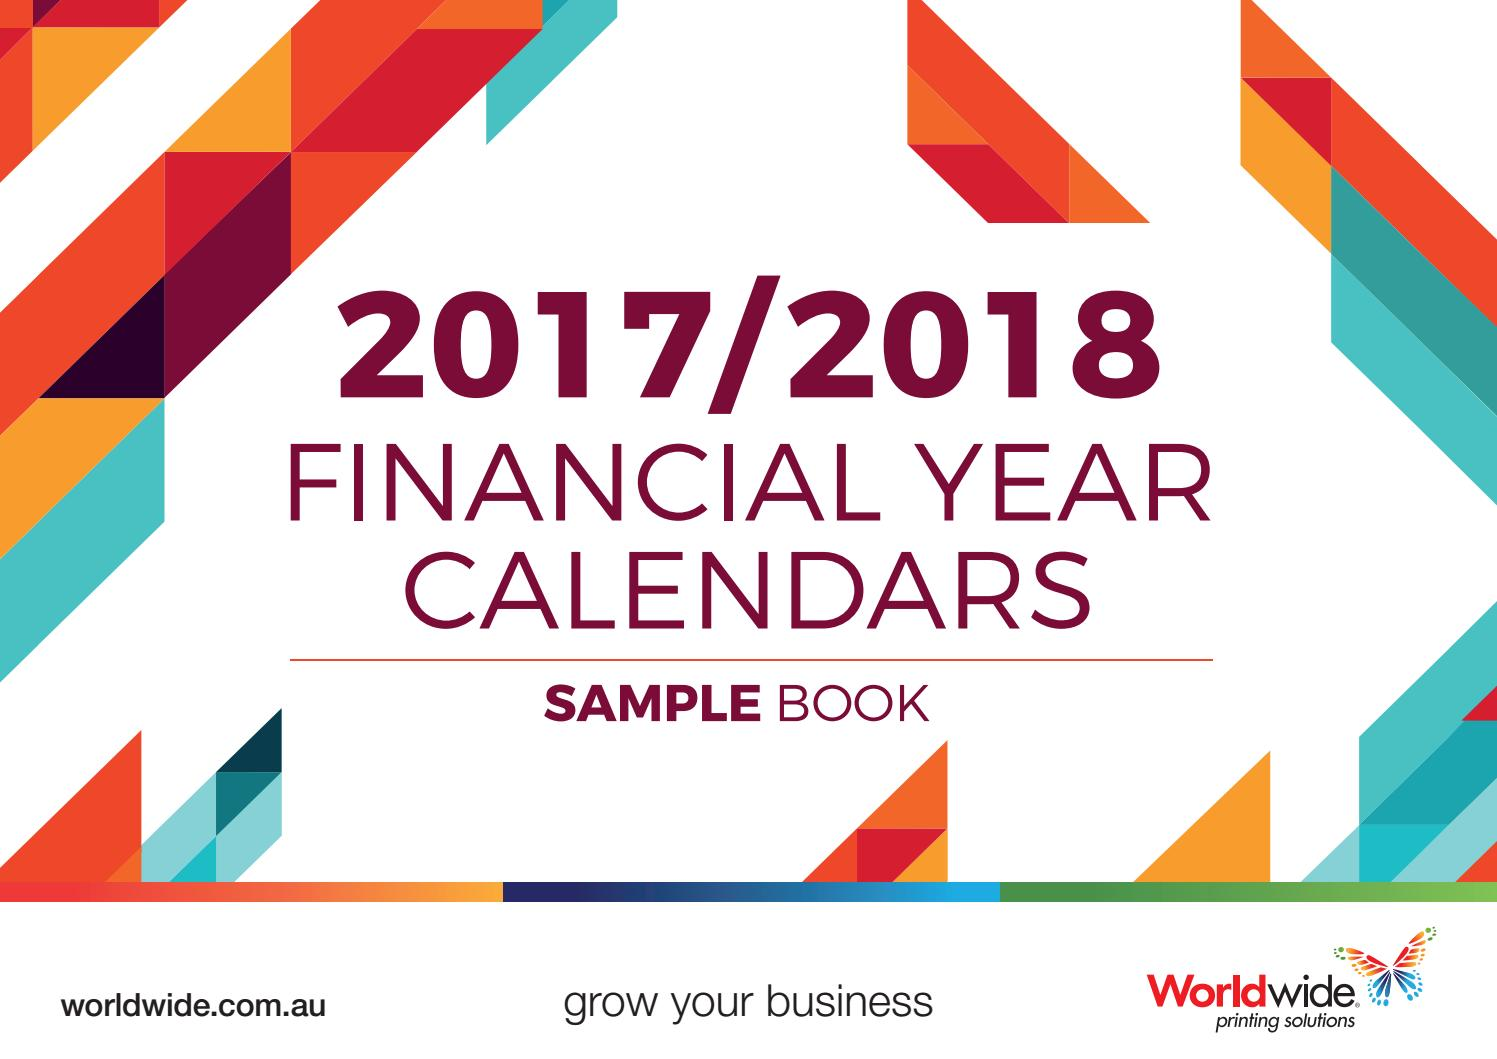 2017 2018 Financial Year Calendars Sample Book By